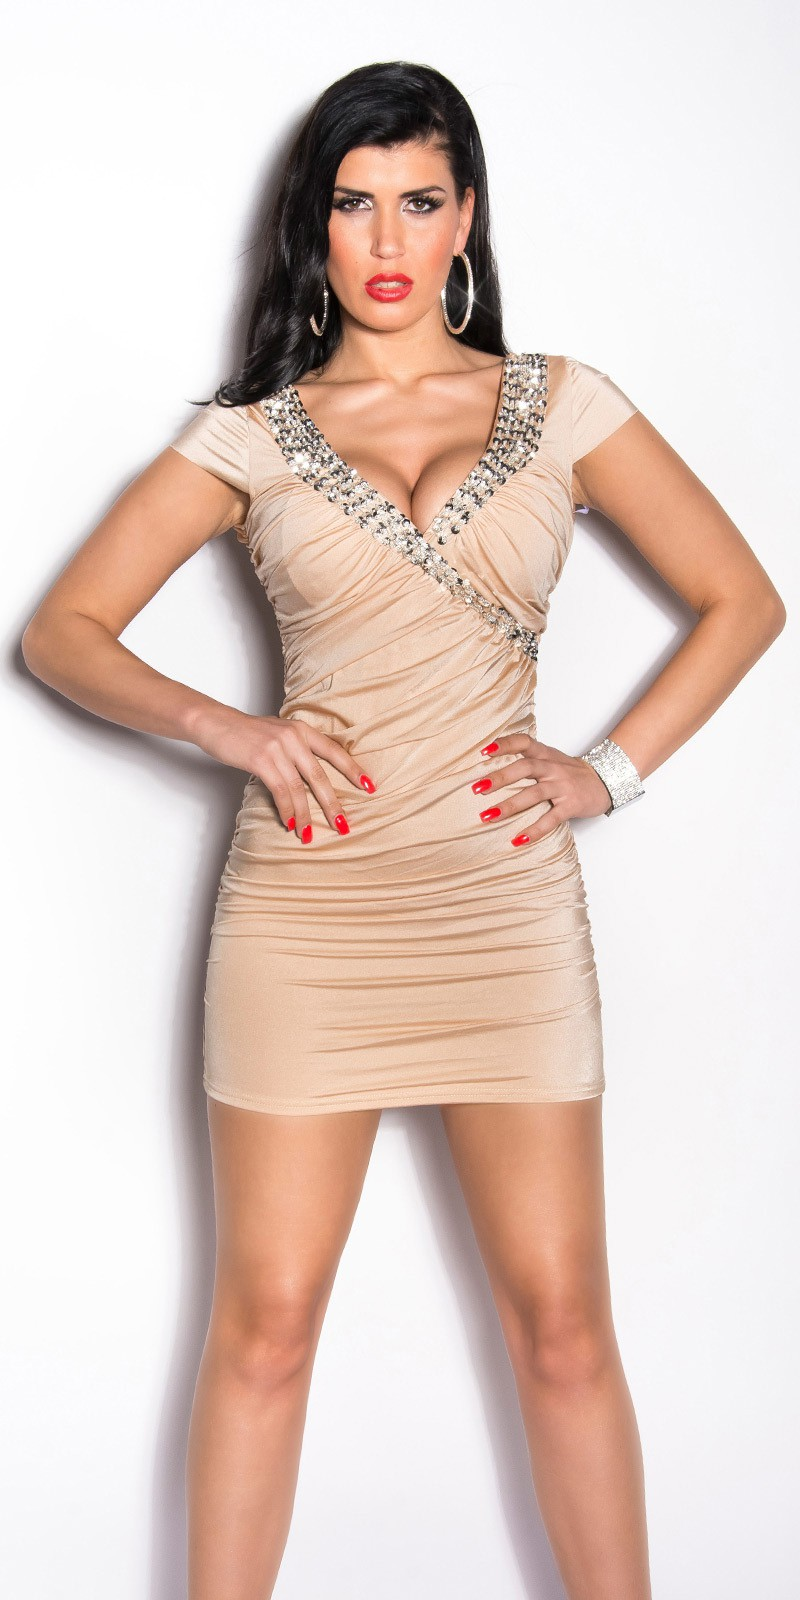 5644f7fb8f72 ooKouCla minidress gathered with sequins  Color BEIGE Size Onesize 0000K9014 BEIGE 4 2